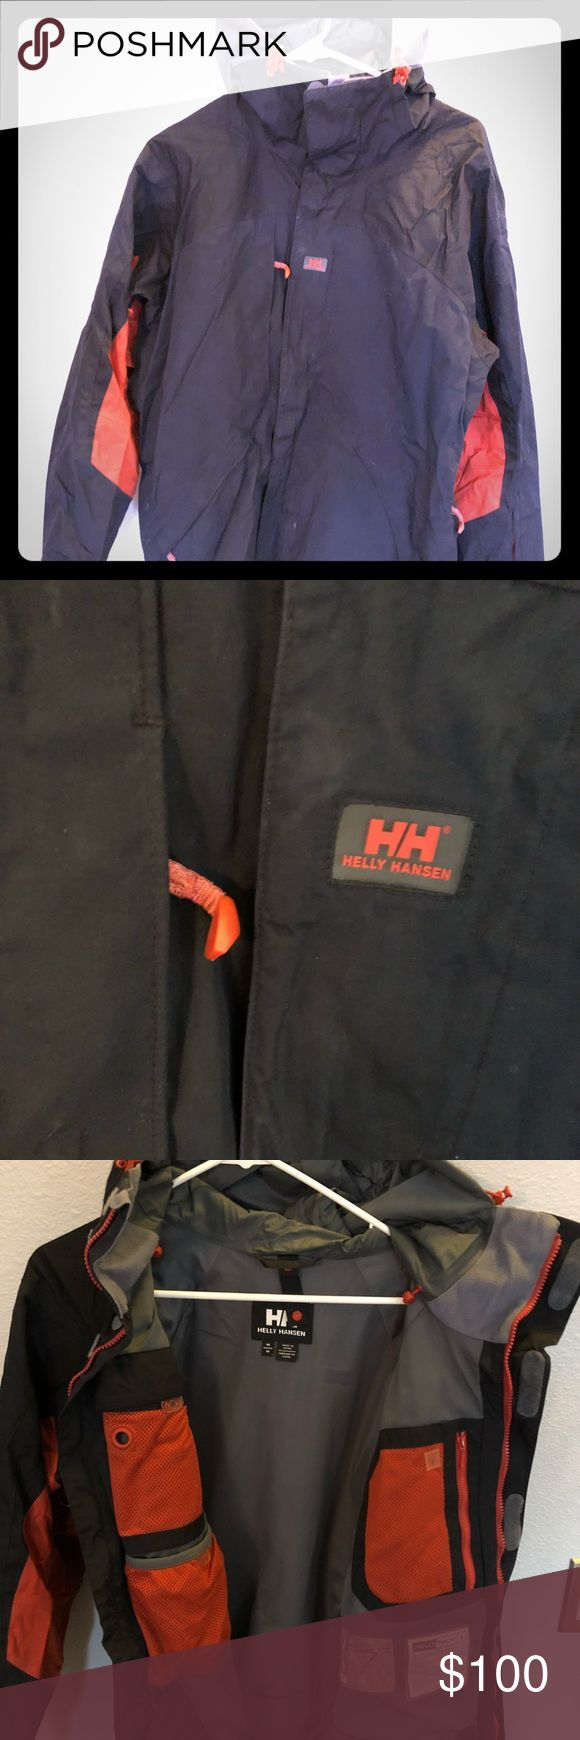 Helly Hansen ski jacket with powder skirt. Used Helly Hansen ski jacket. In excellent condition. Will wash with technical wash before shipment. Helly Hansen Jackets & Coats Ski & Snowboard